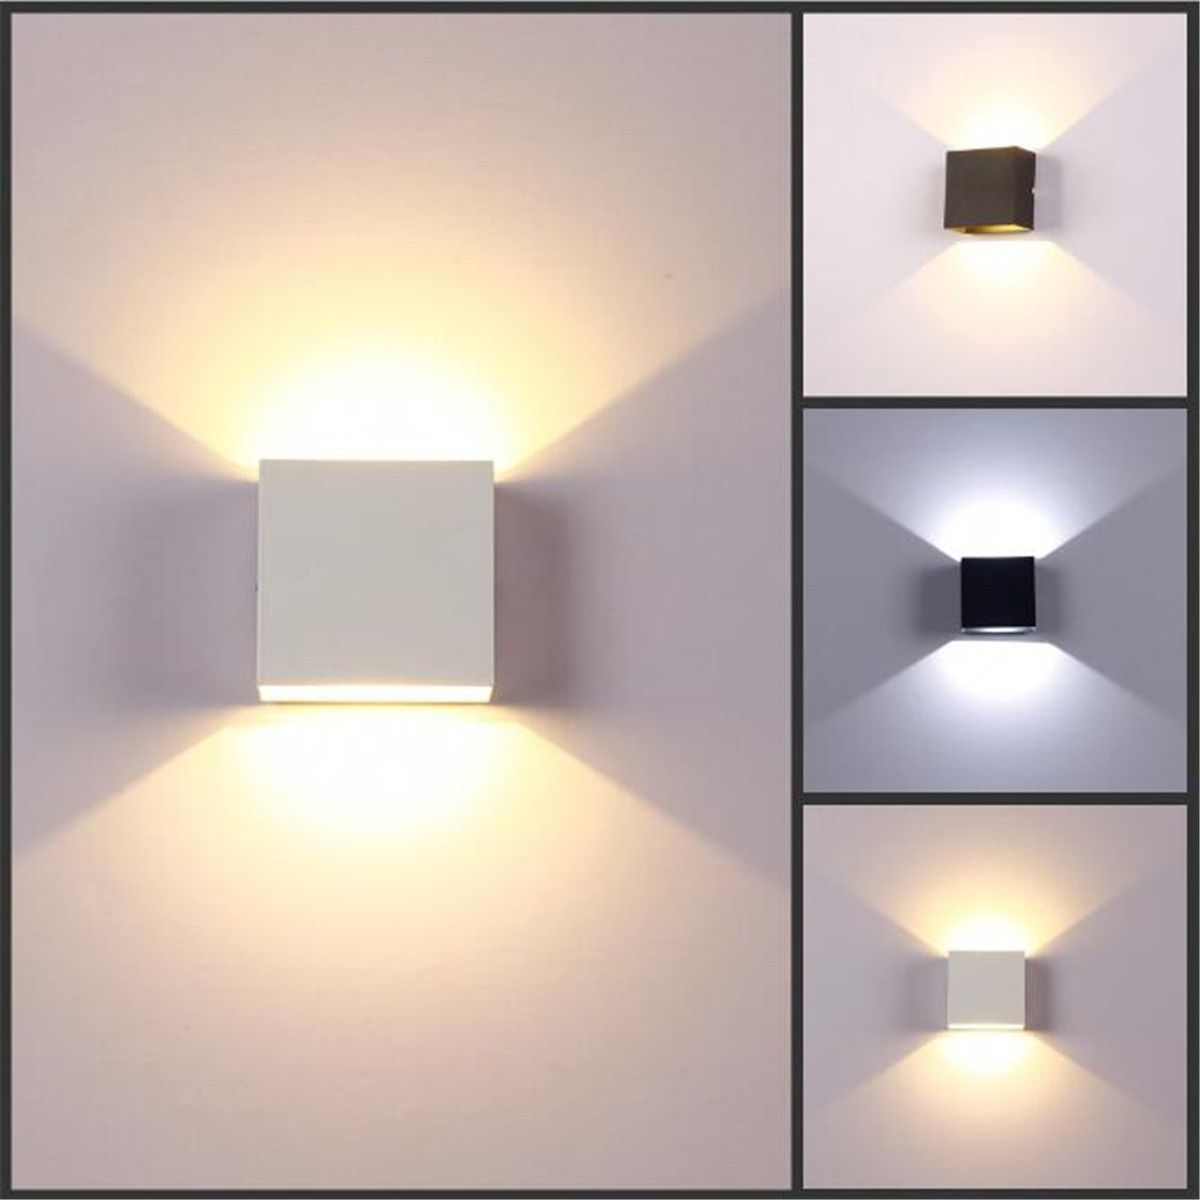 Pin By Tami Smith On Svetlo In 2021 Indoor Wall Lights Led Wall Lamp Wall Lamps Living Room